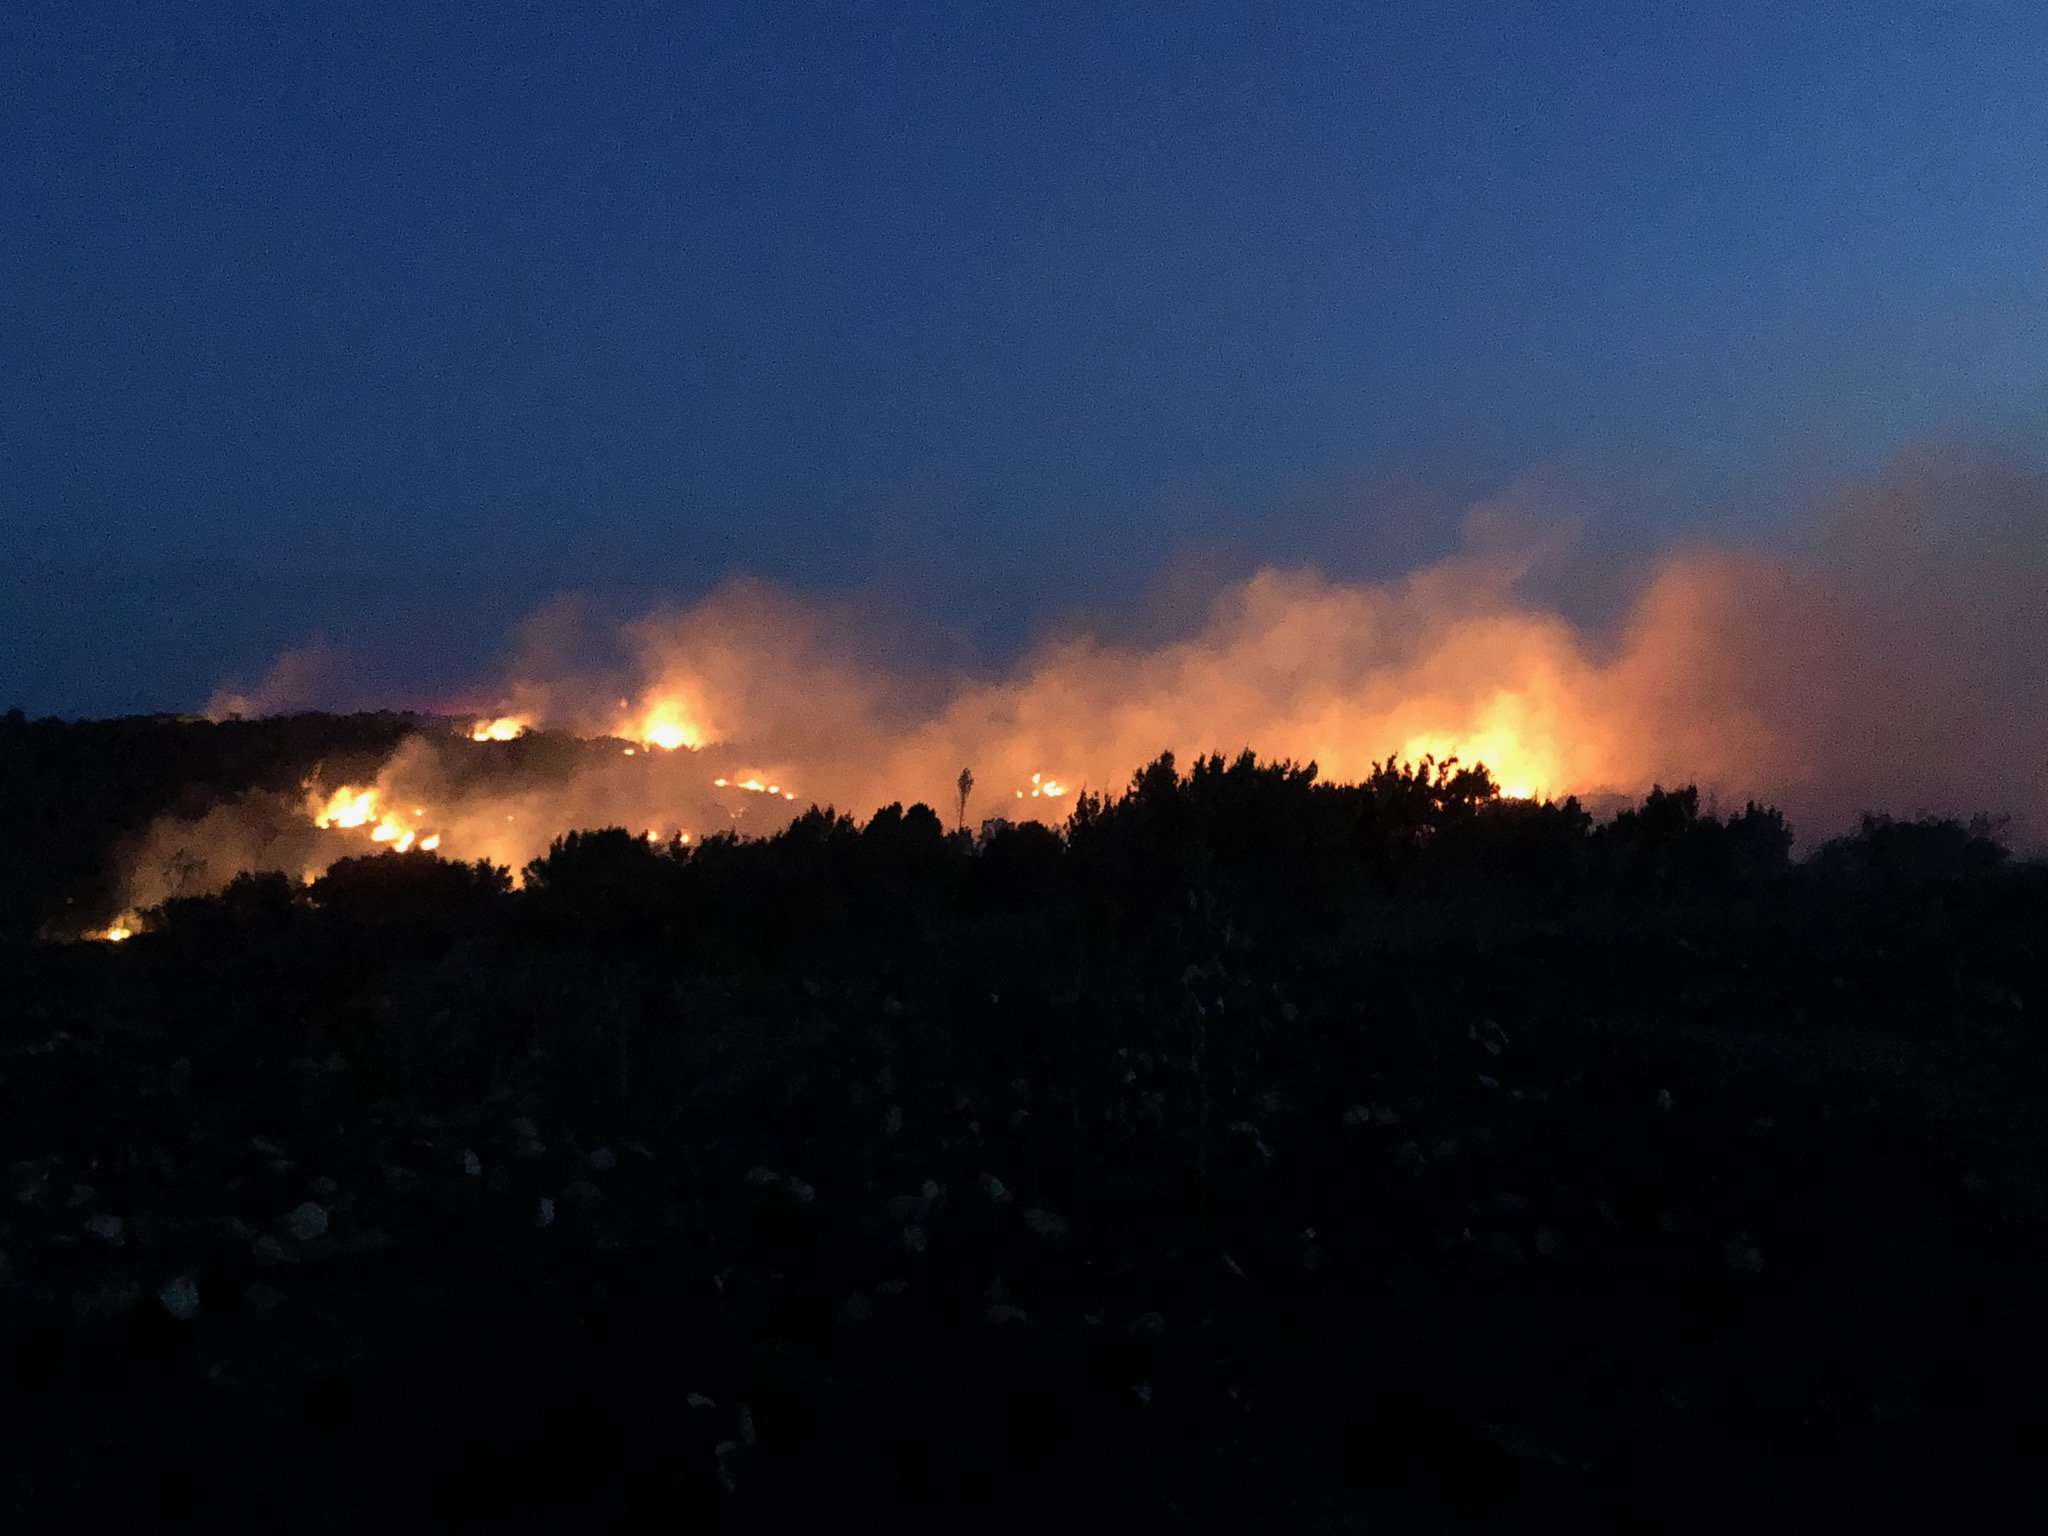 Bird Ranch Fire, located in western Cottle County, on 21 August 2019. The picture is courtesy of Linda Salzar.